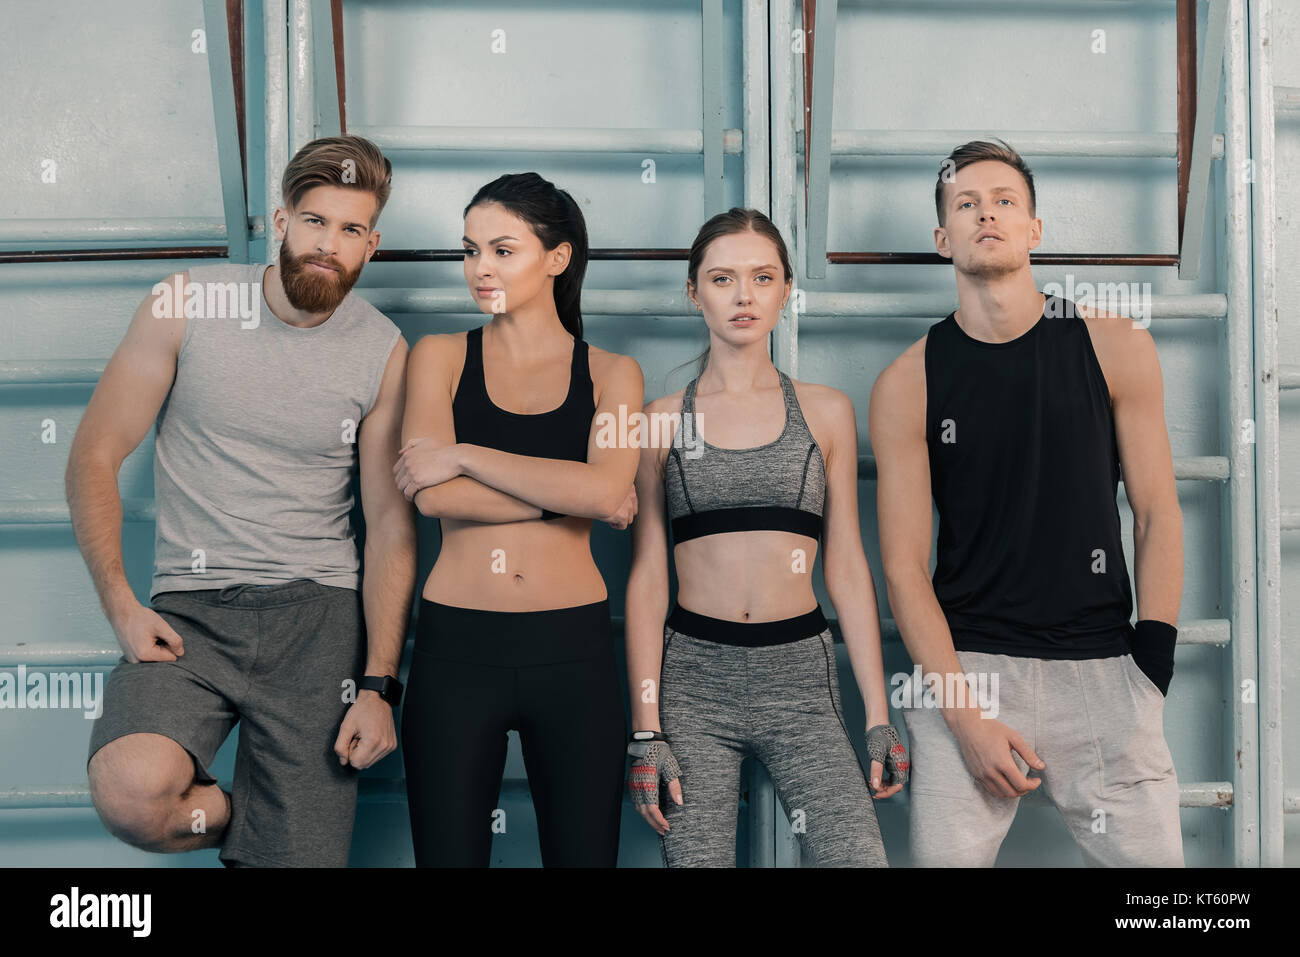 confident sporty men and women in gym - Stock Image